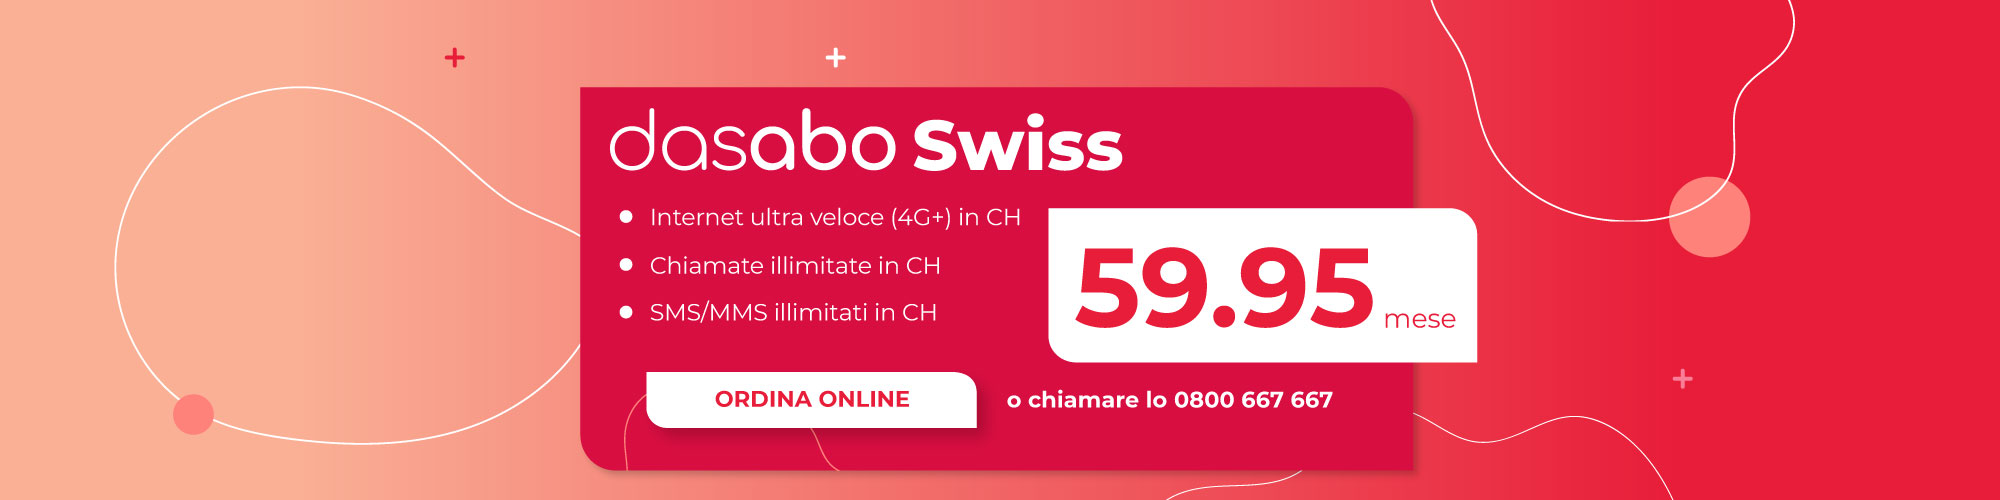 DasAbo Swiss offer